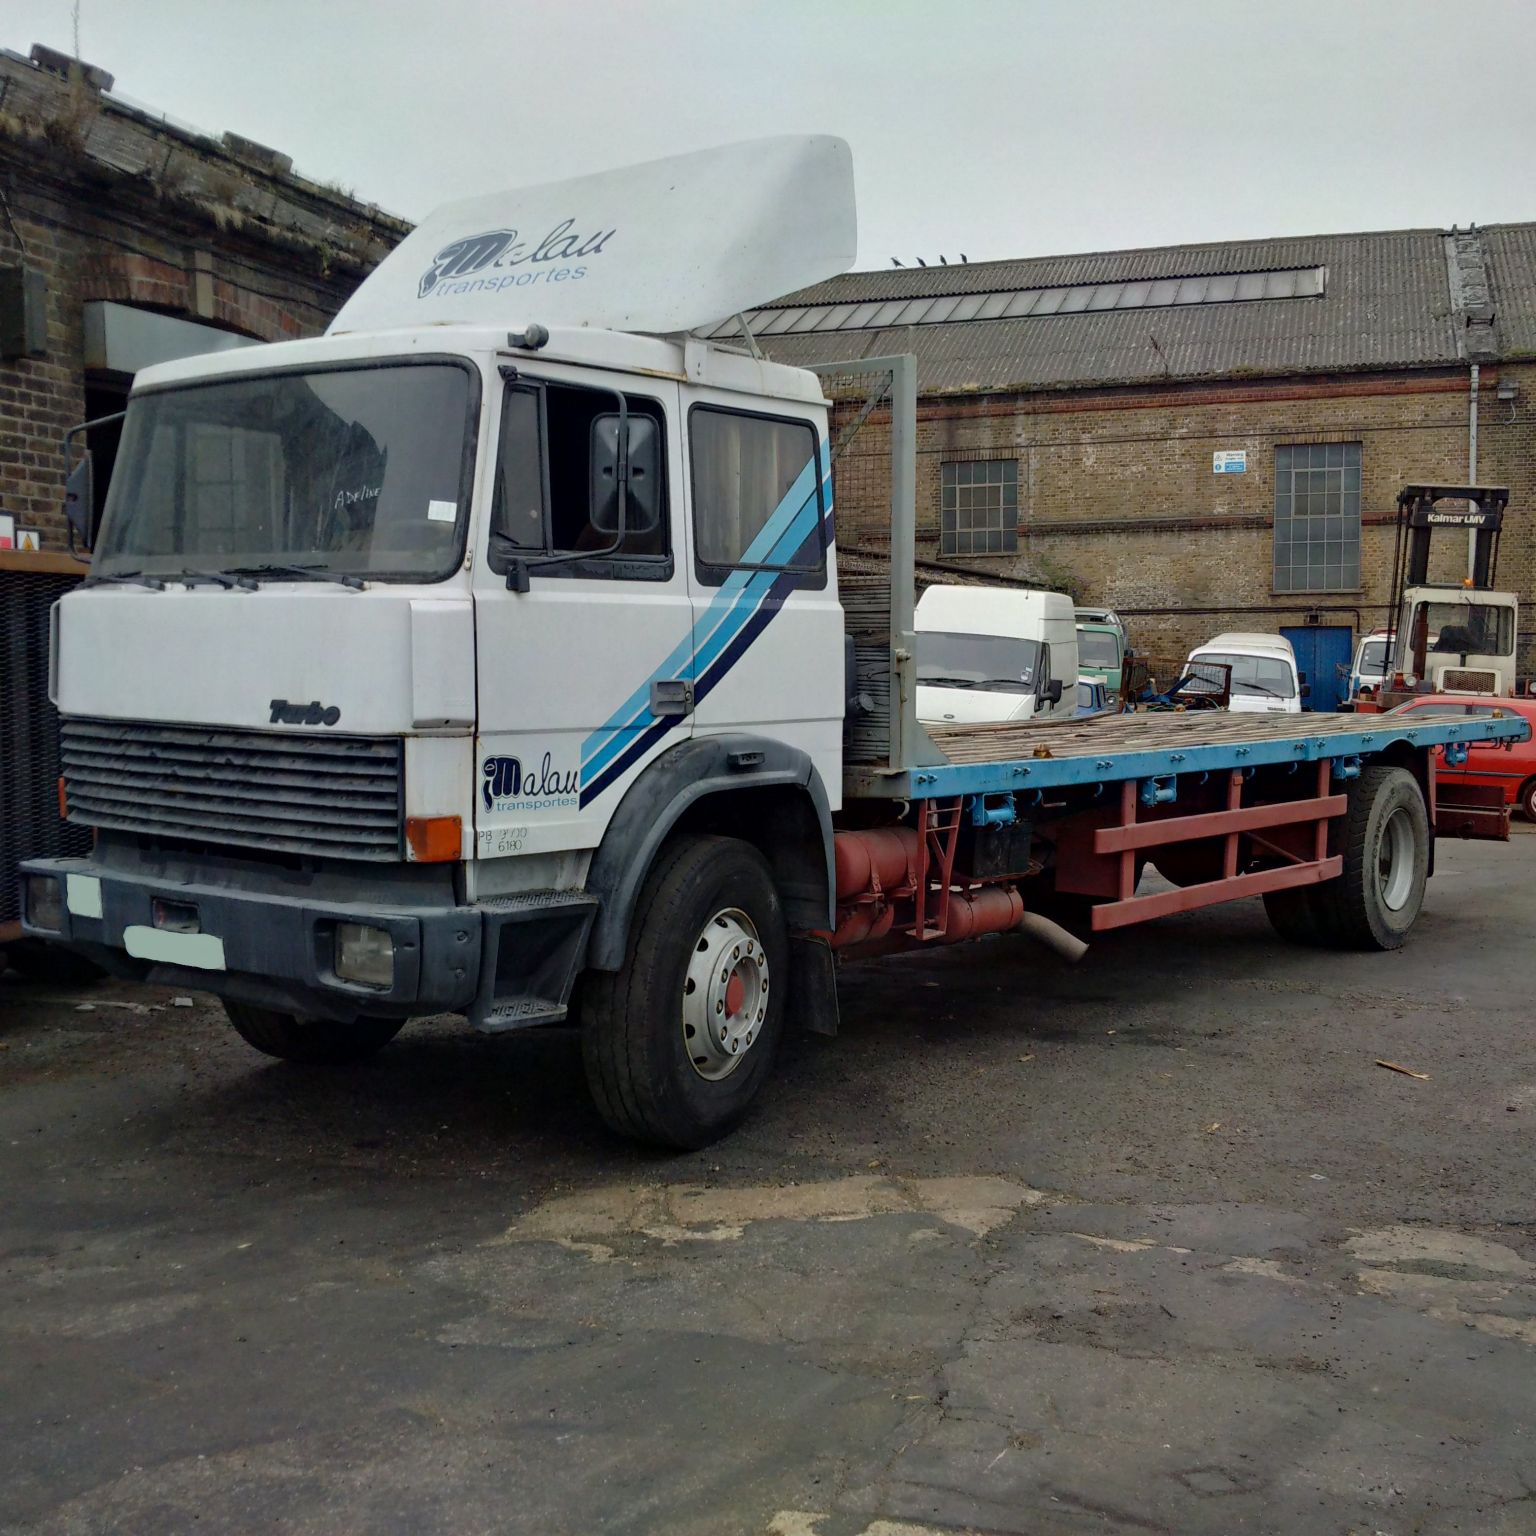 Left hand drive Iveco 175.24 19 Ton flat lorry with twist locks for containers.